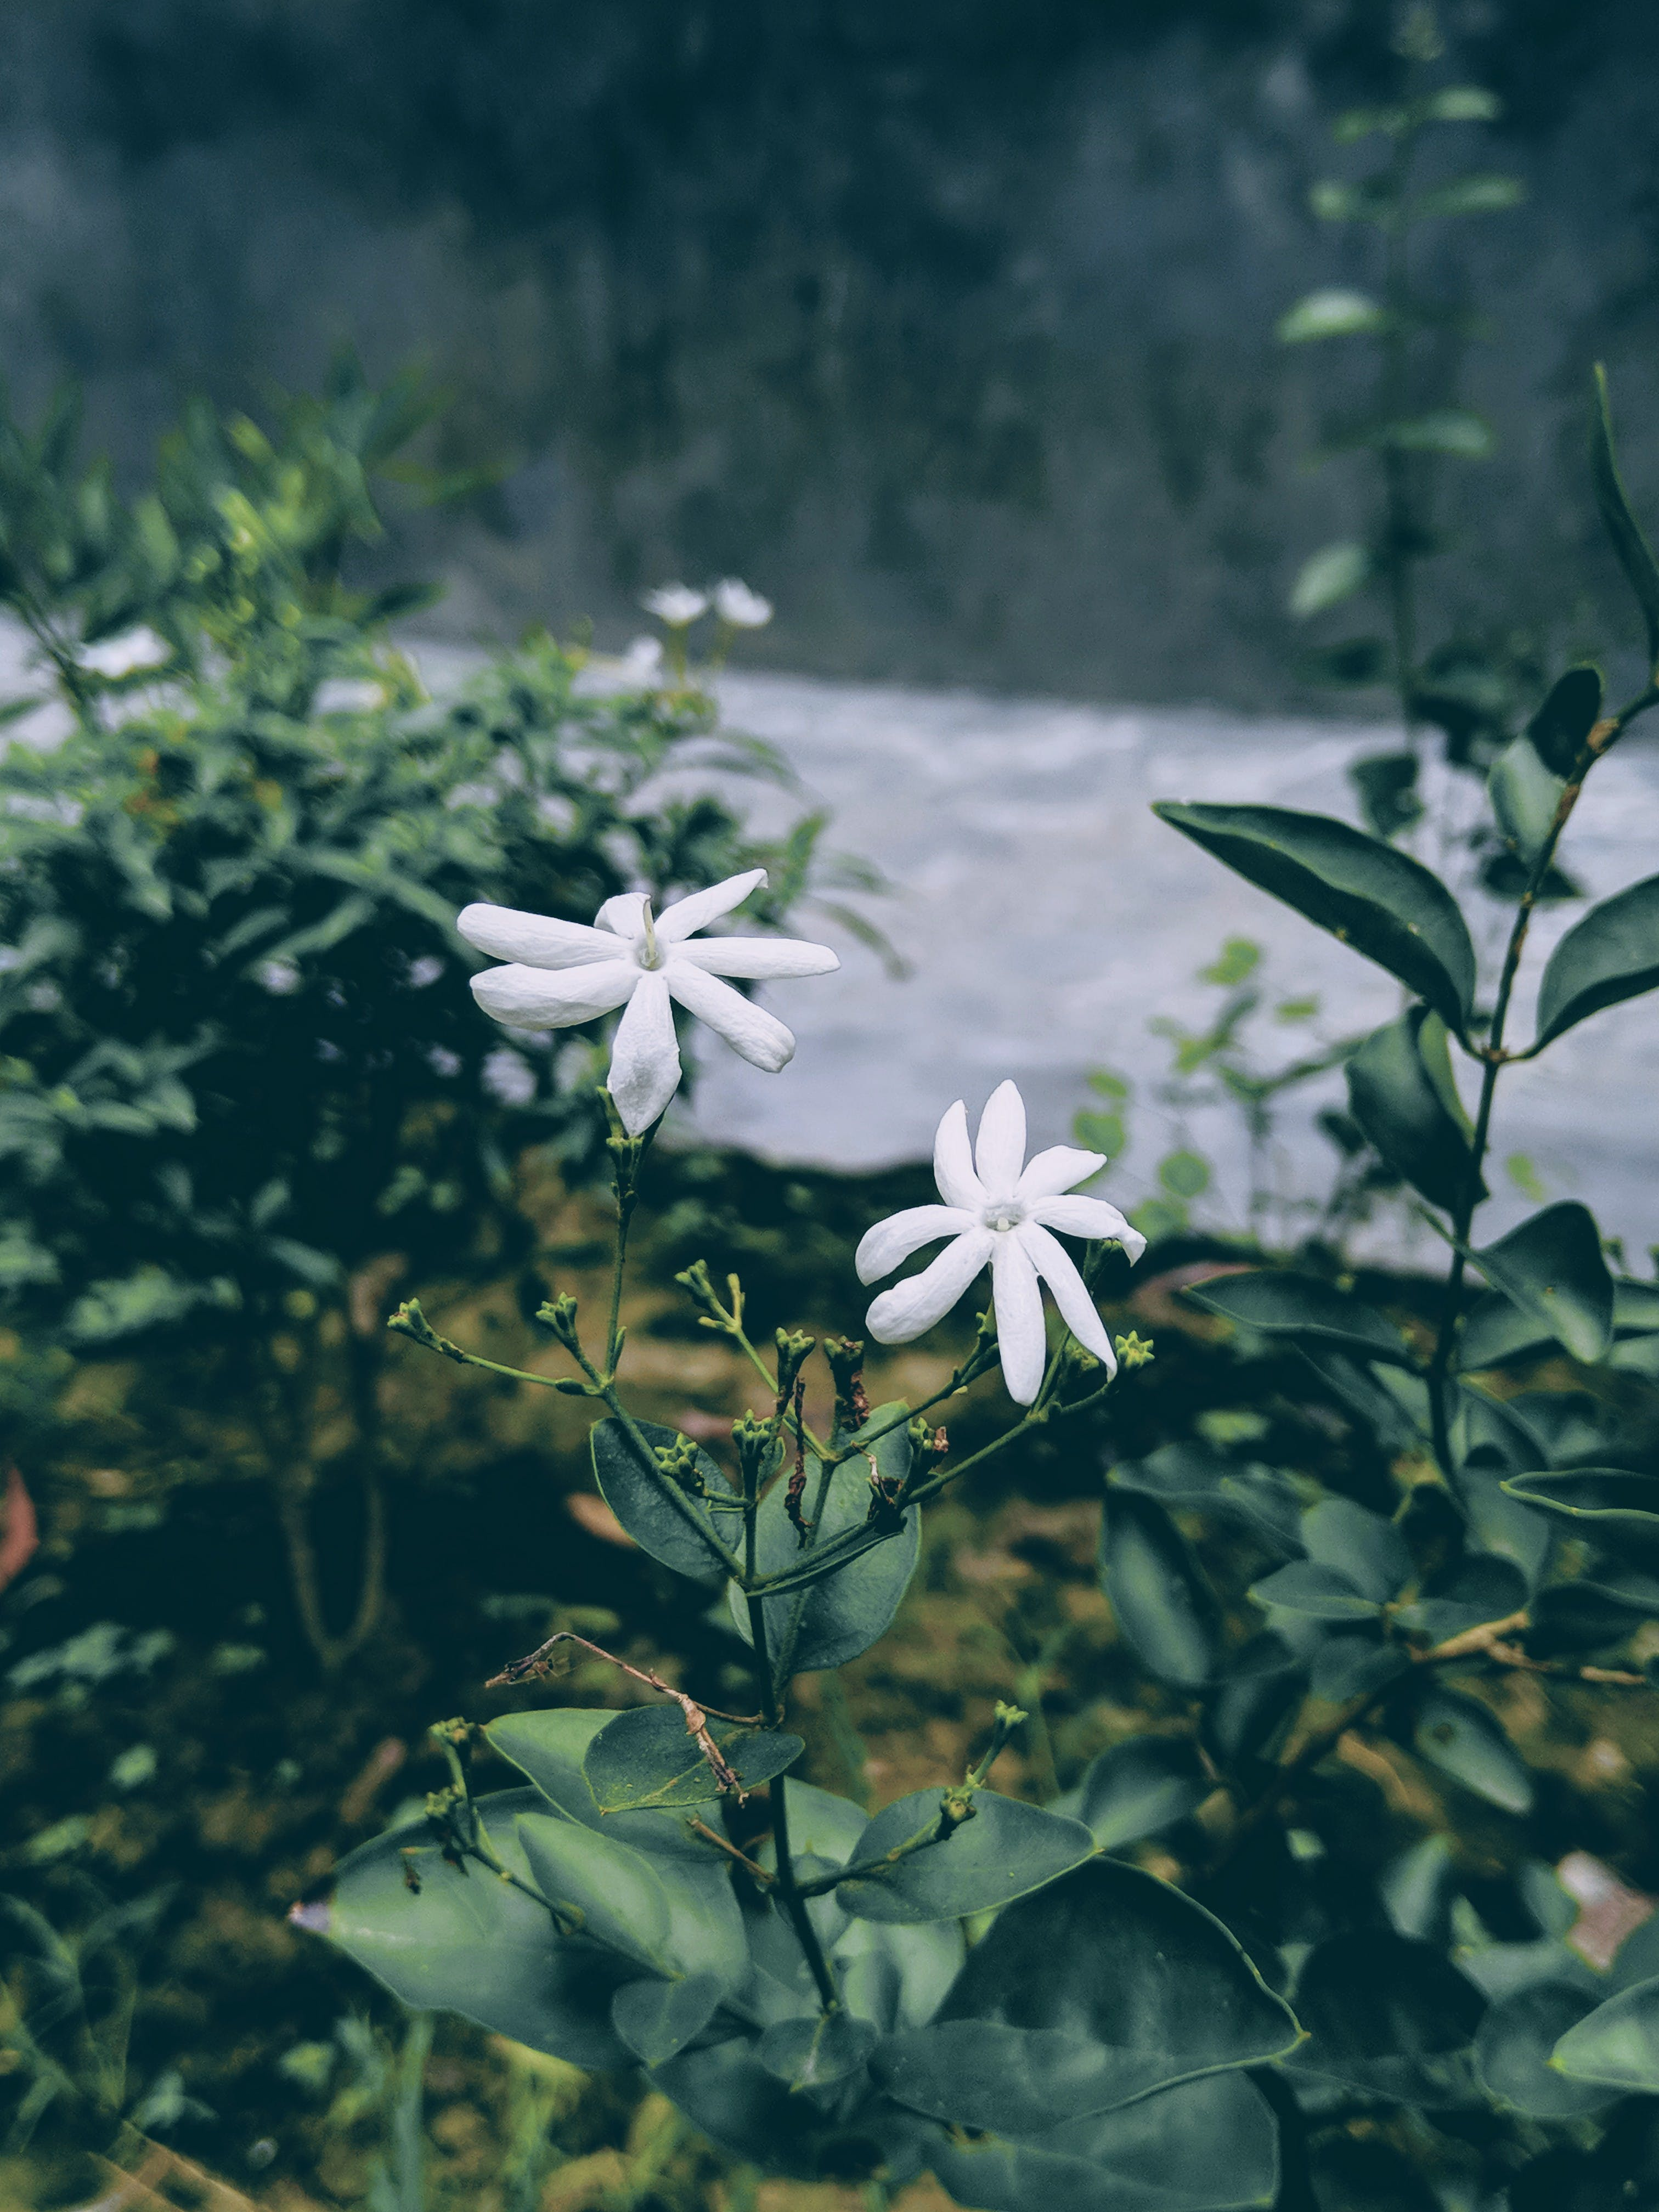 Selected Focus Photo of White Petaled Flowers With Green Leaf